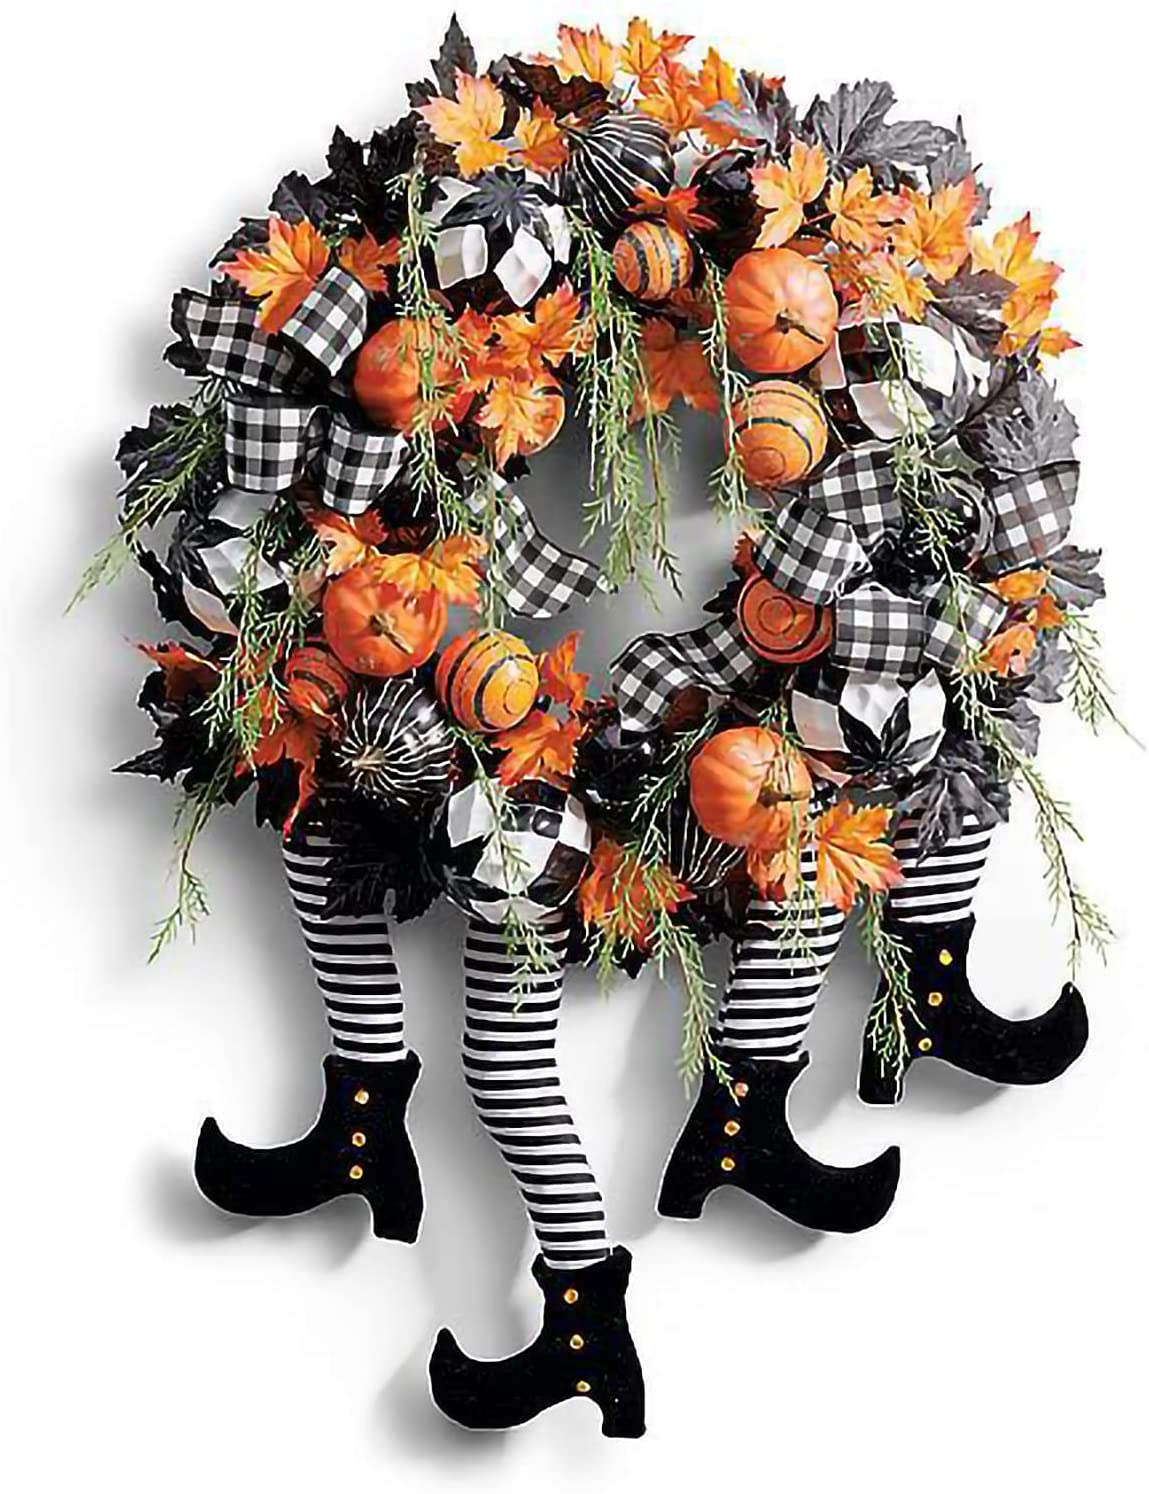 Dealing full price reduction 24 Inch Witch Directly managed store Halloween Wreath Pumpkin Ar Door Legs with